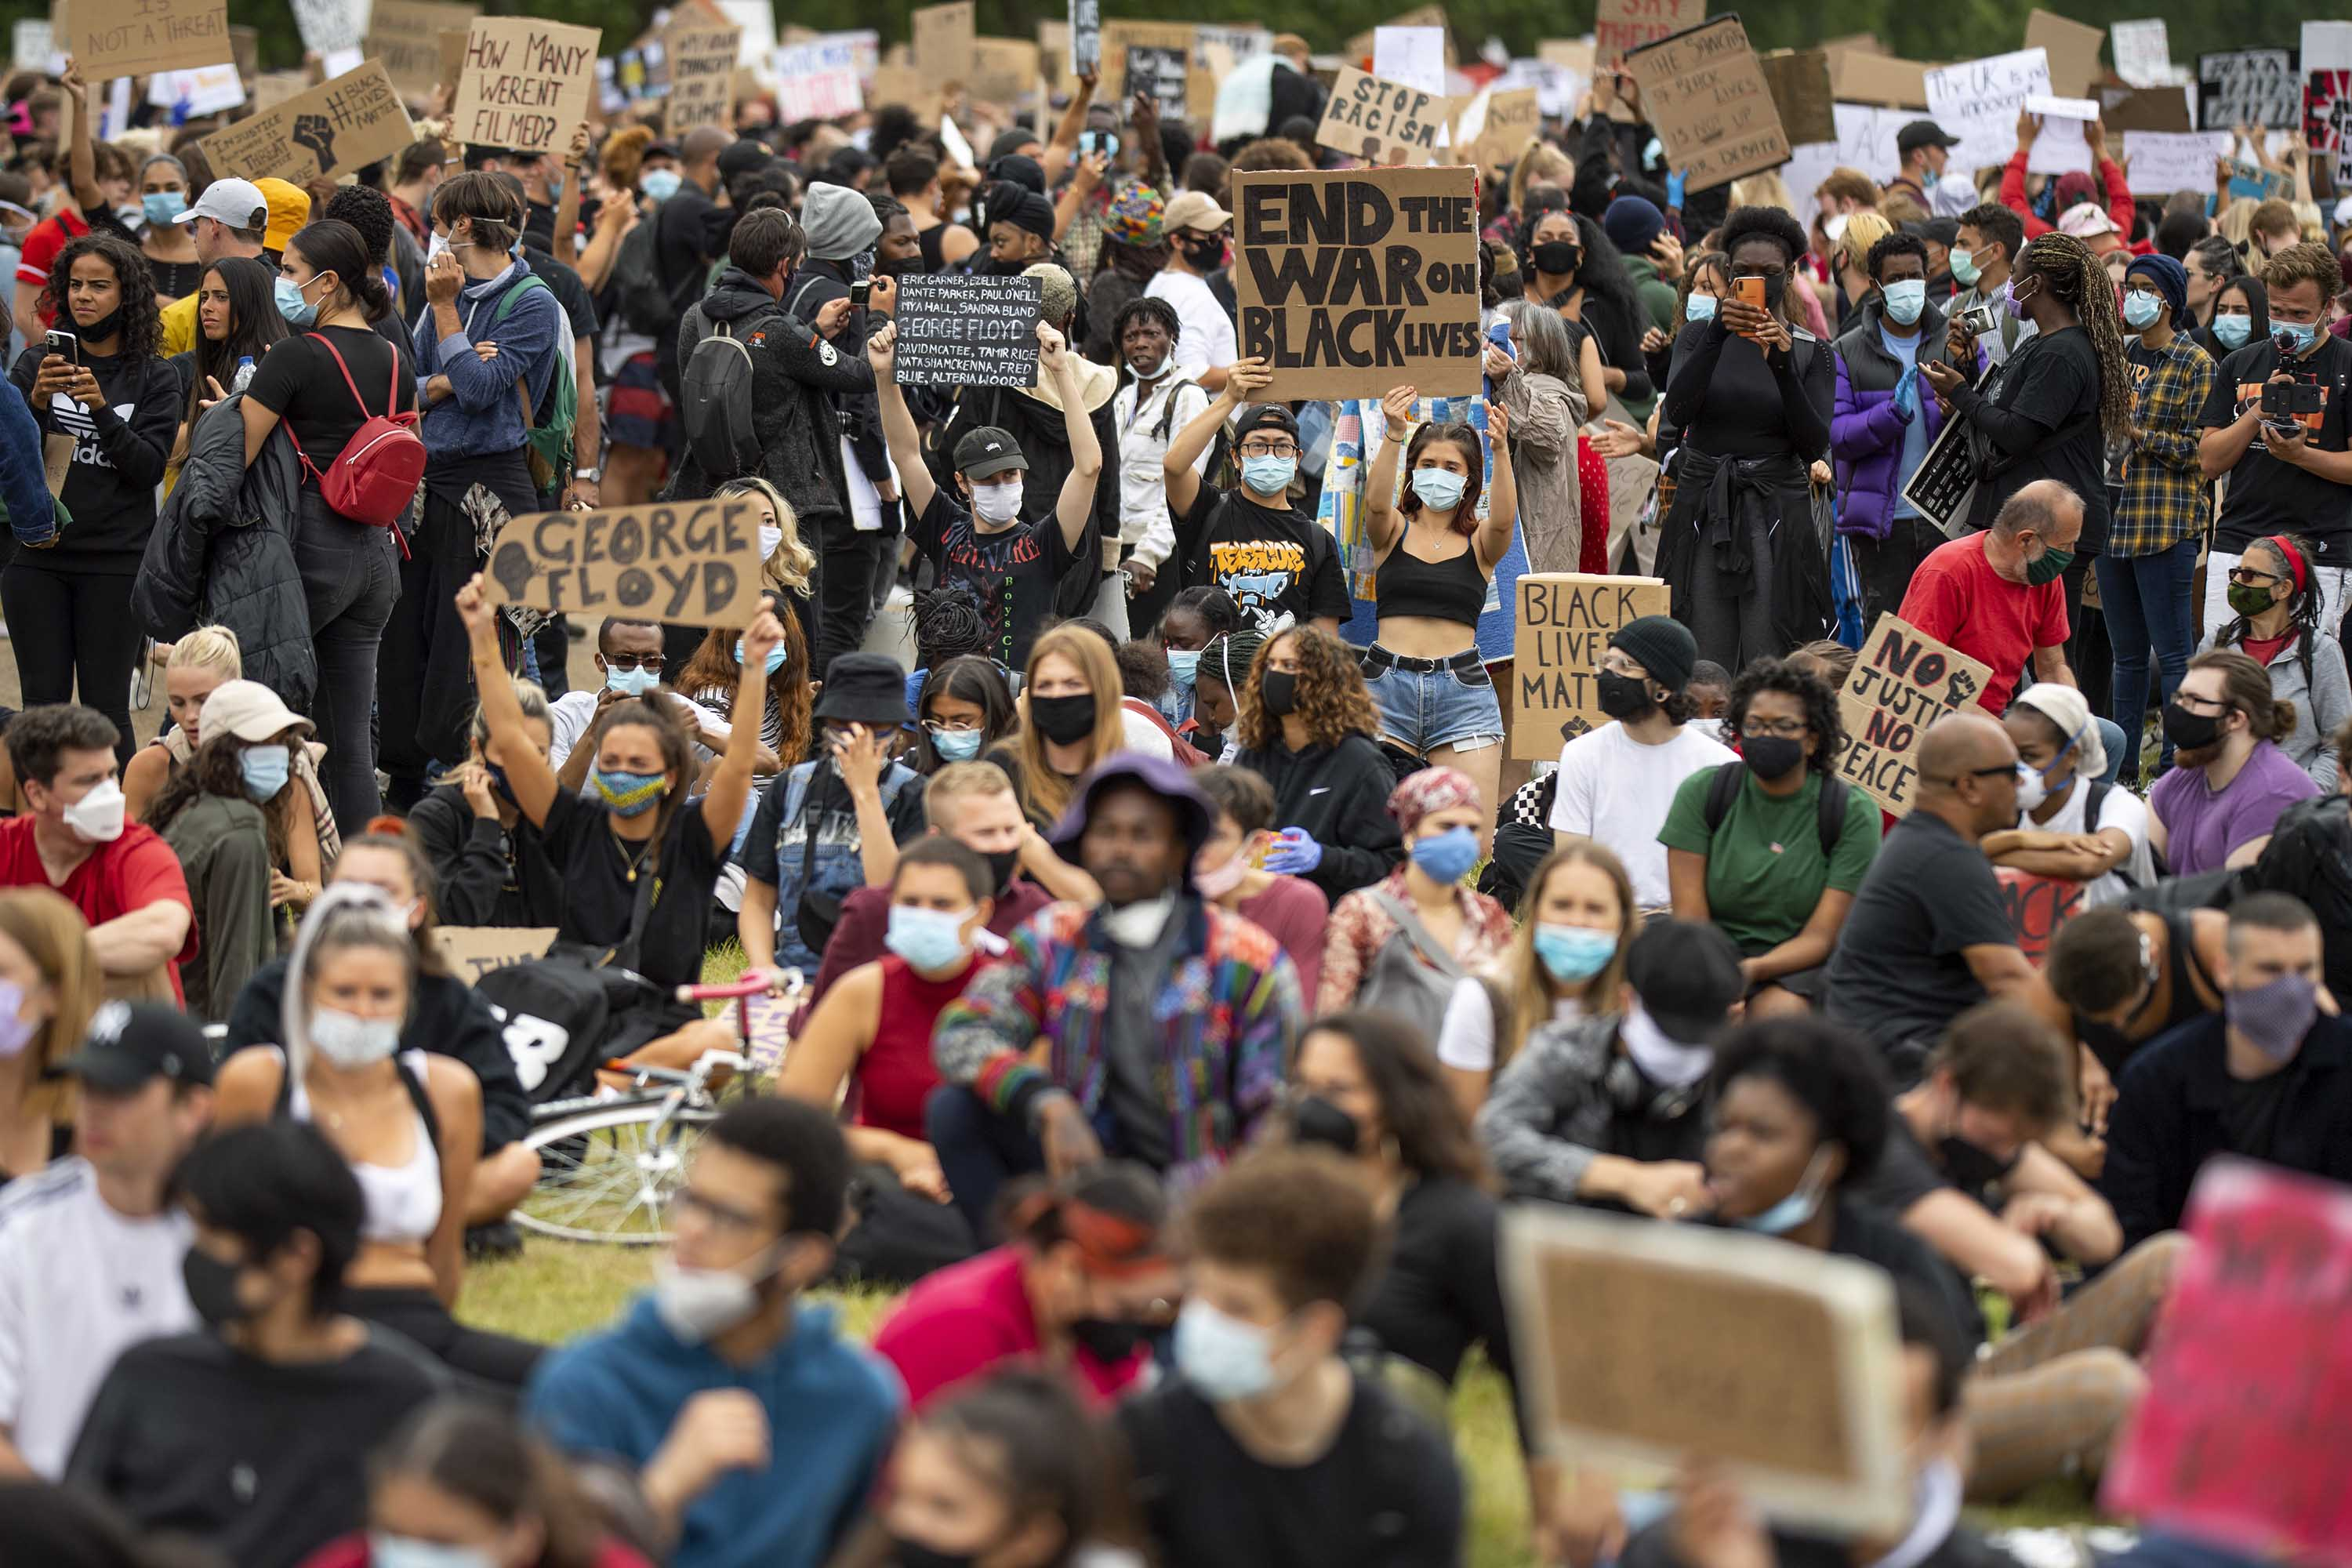 People hold up signs during a Black Lives Matter protest in London on June 3.